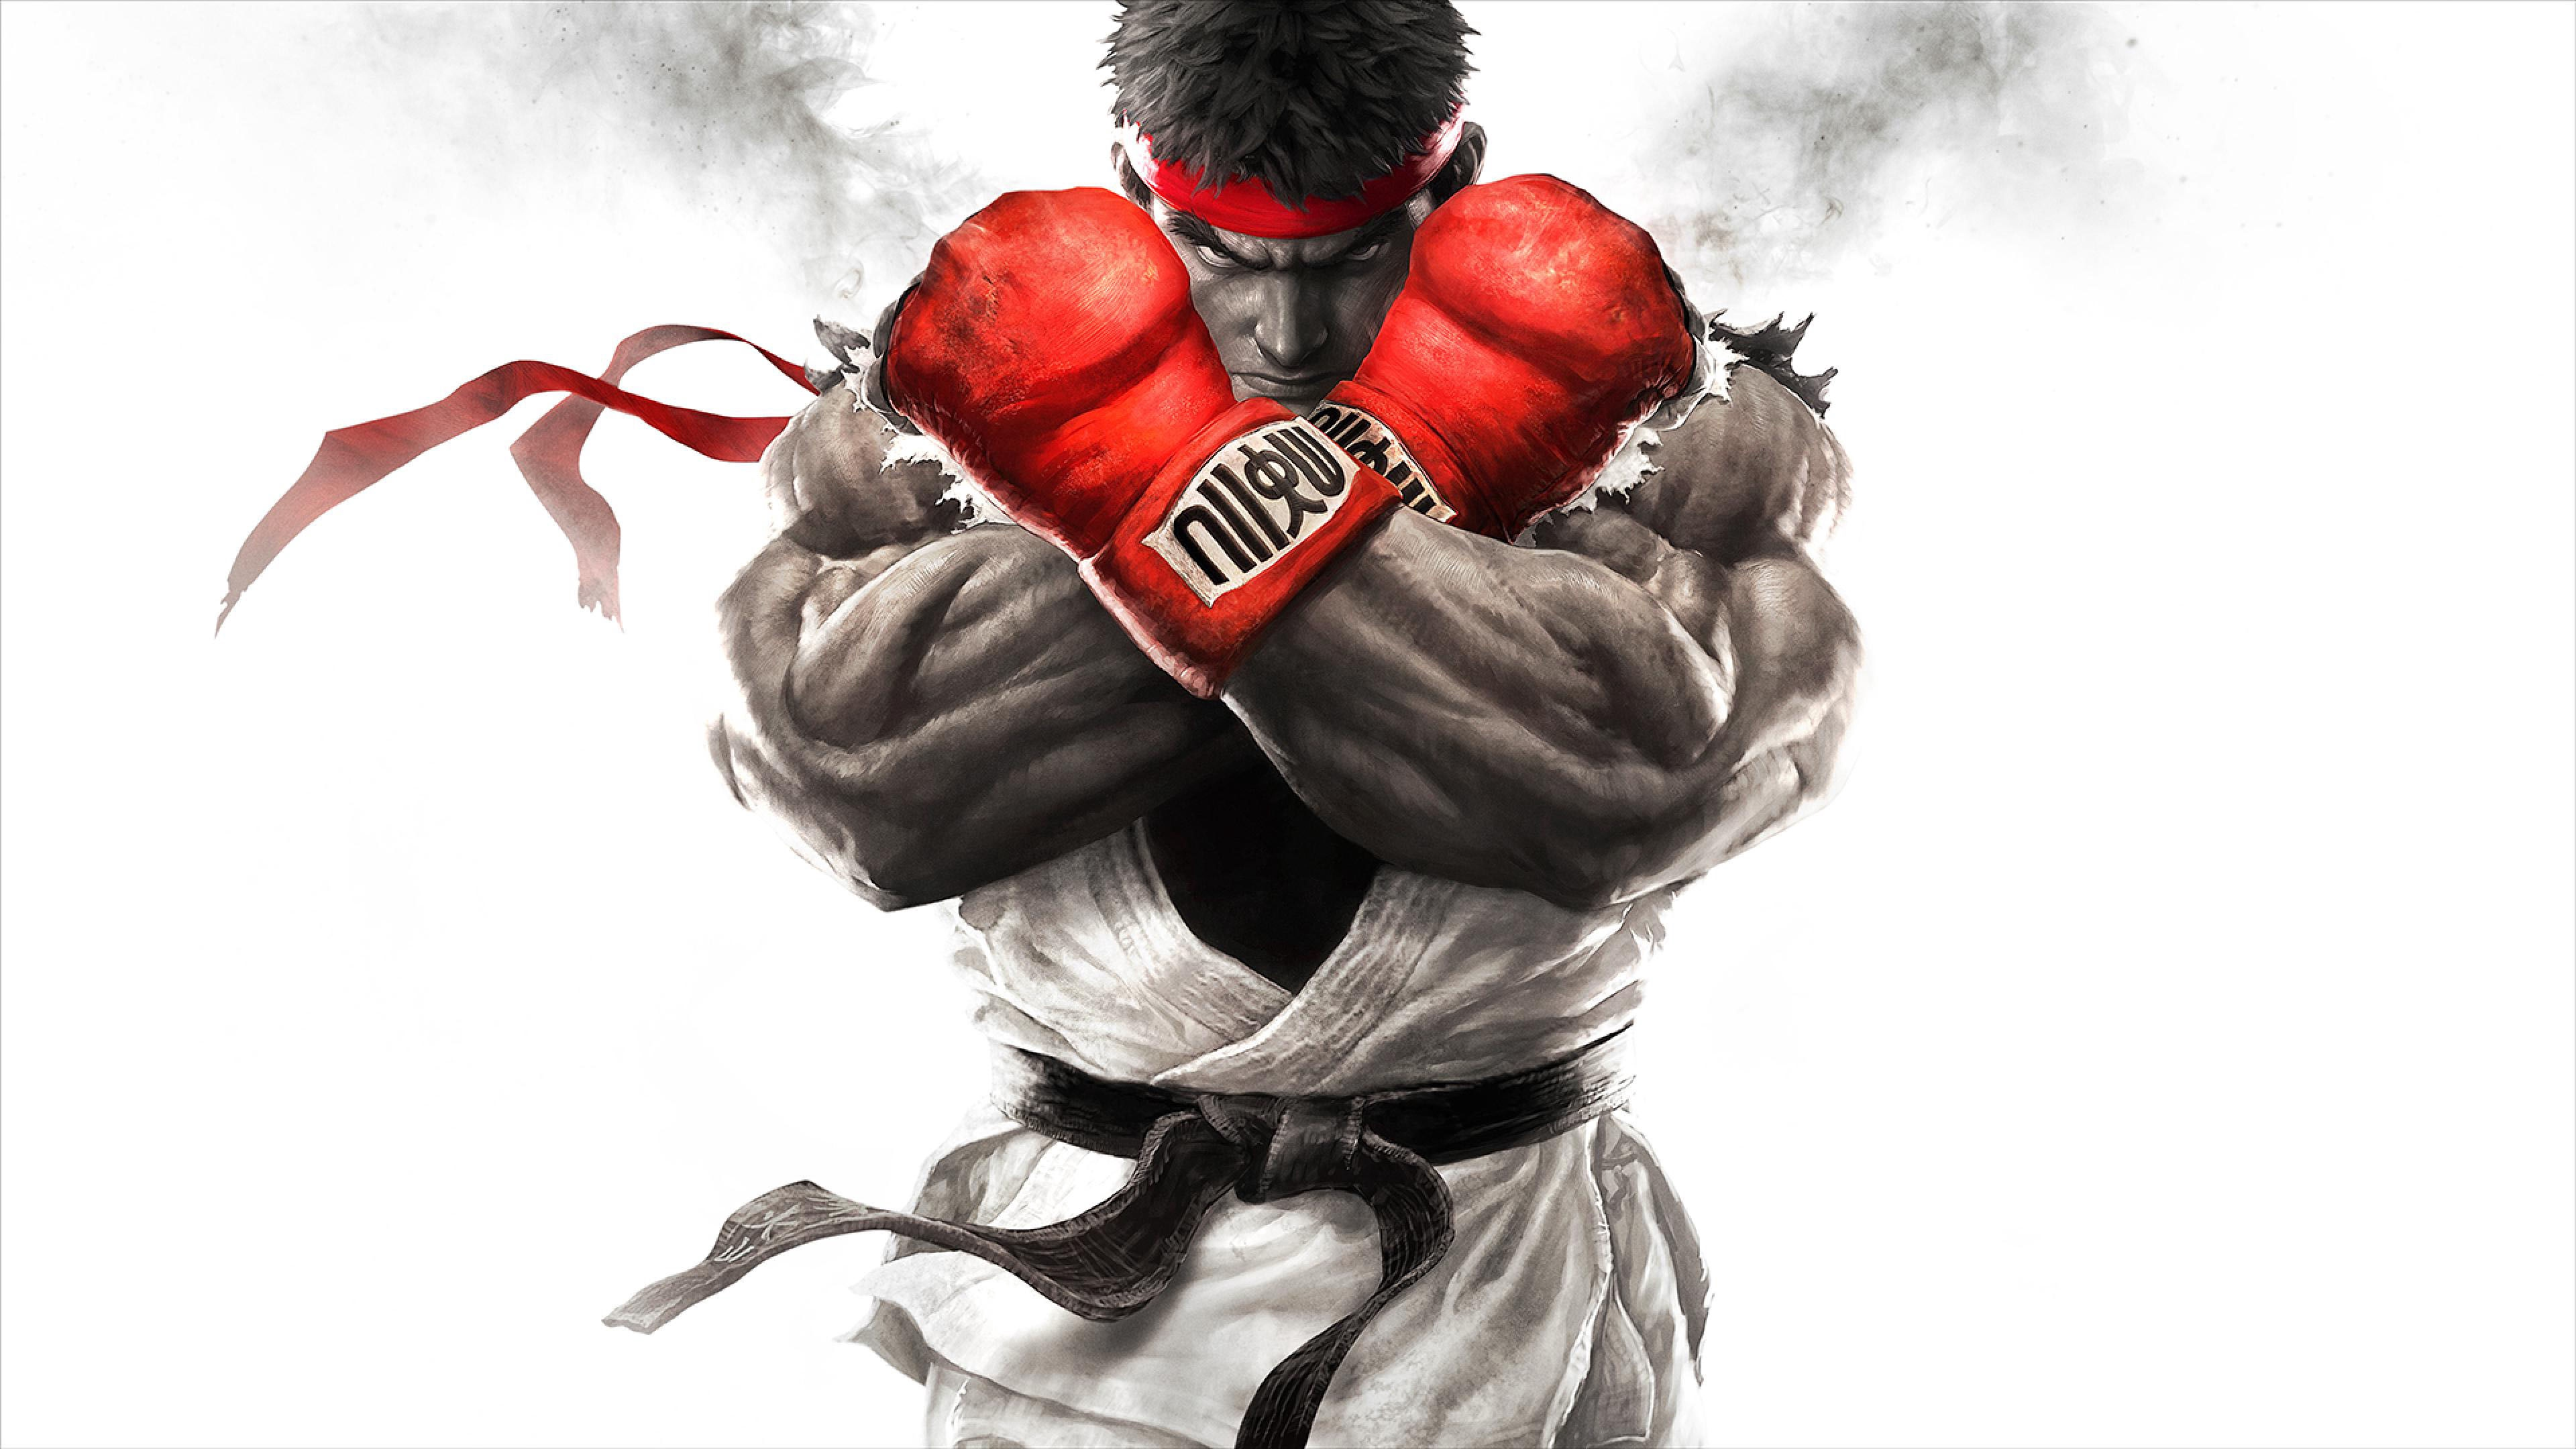 street fighter v fighting fighter art 4k 1538945002 - street fighter v, fighting, fighter, art 4k - street fighter v, Fighting, Fighter